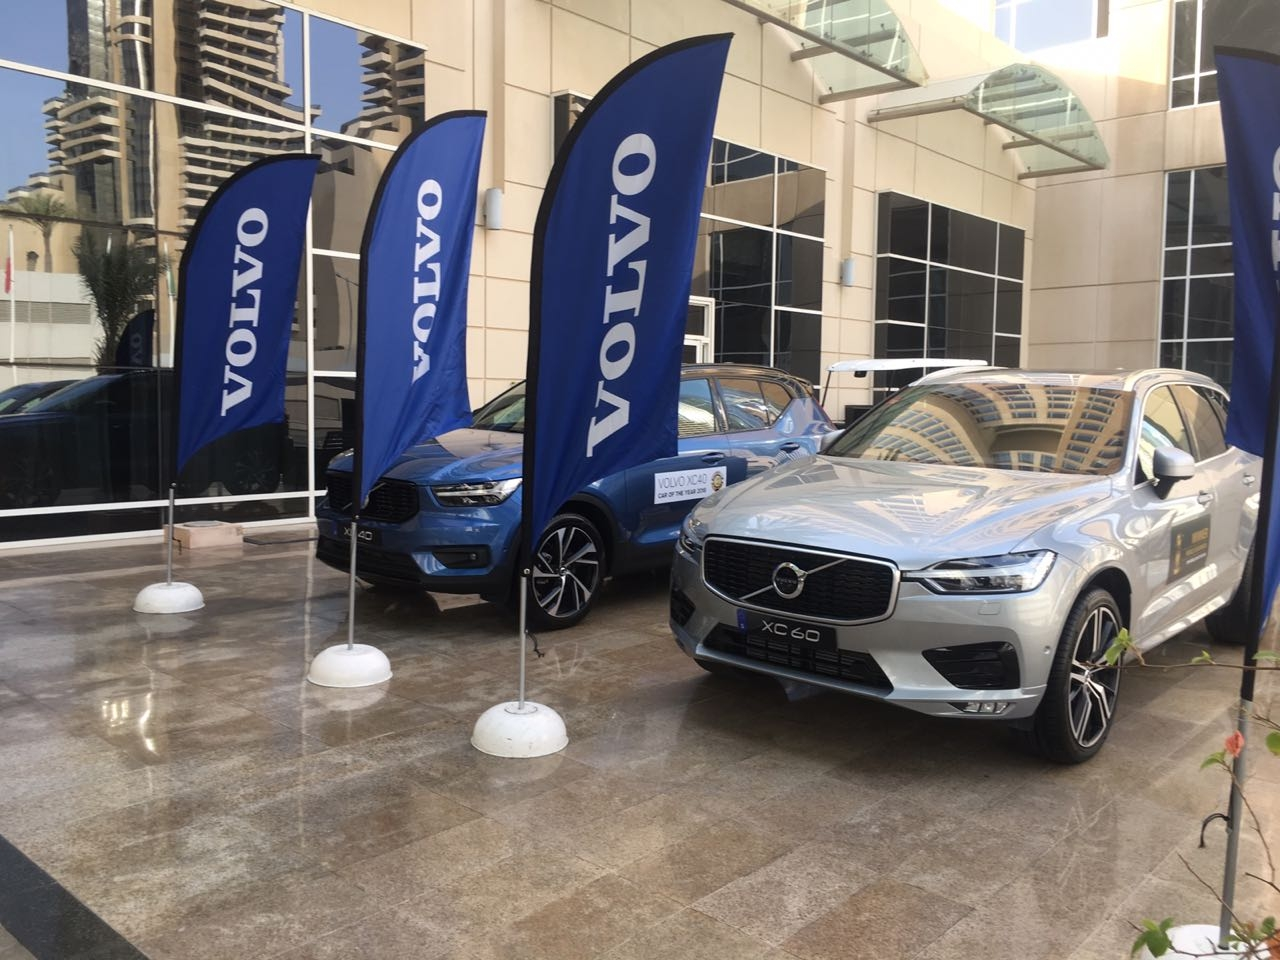 Thank you to our main sponsor Volvo Cars